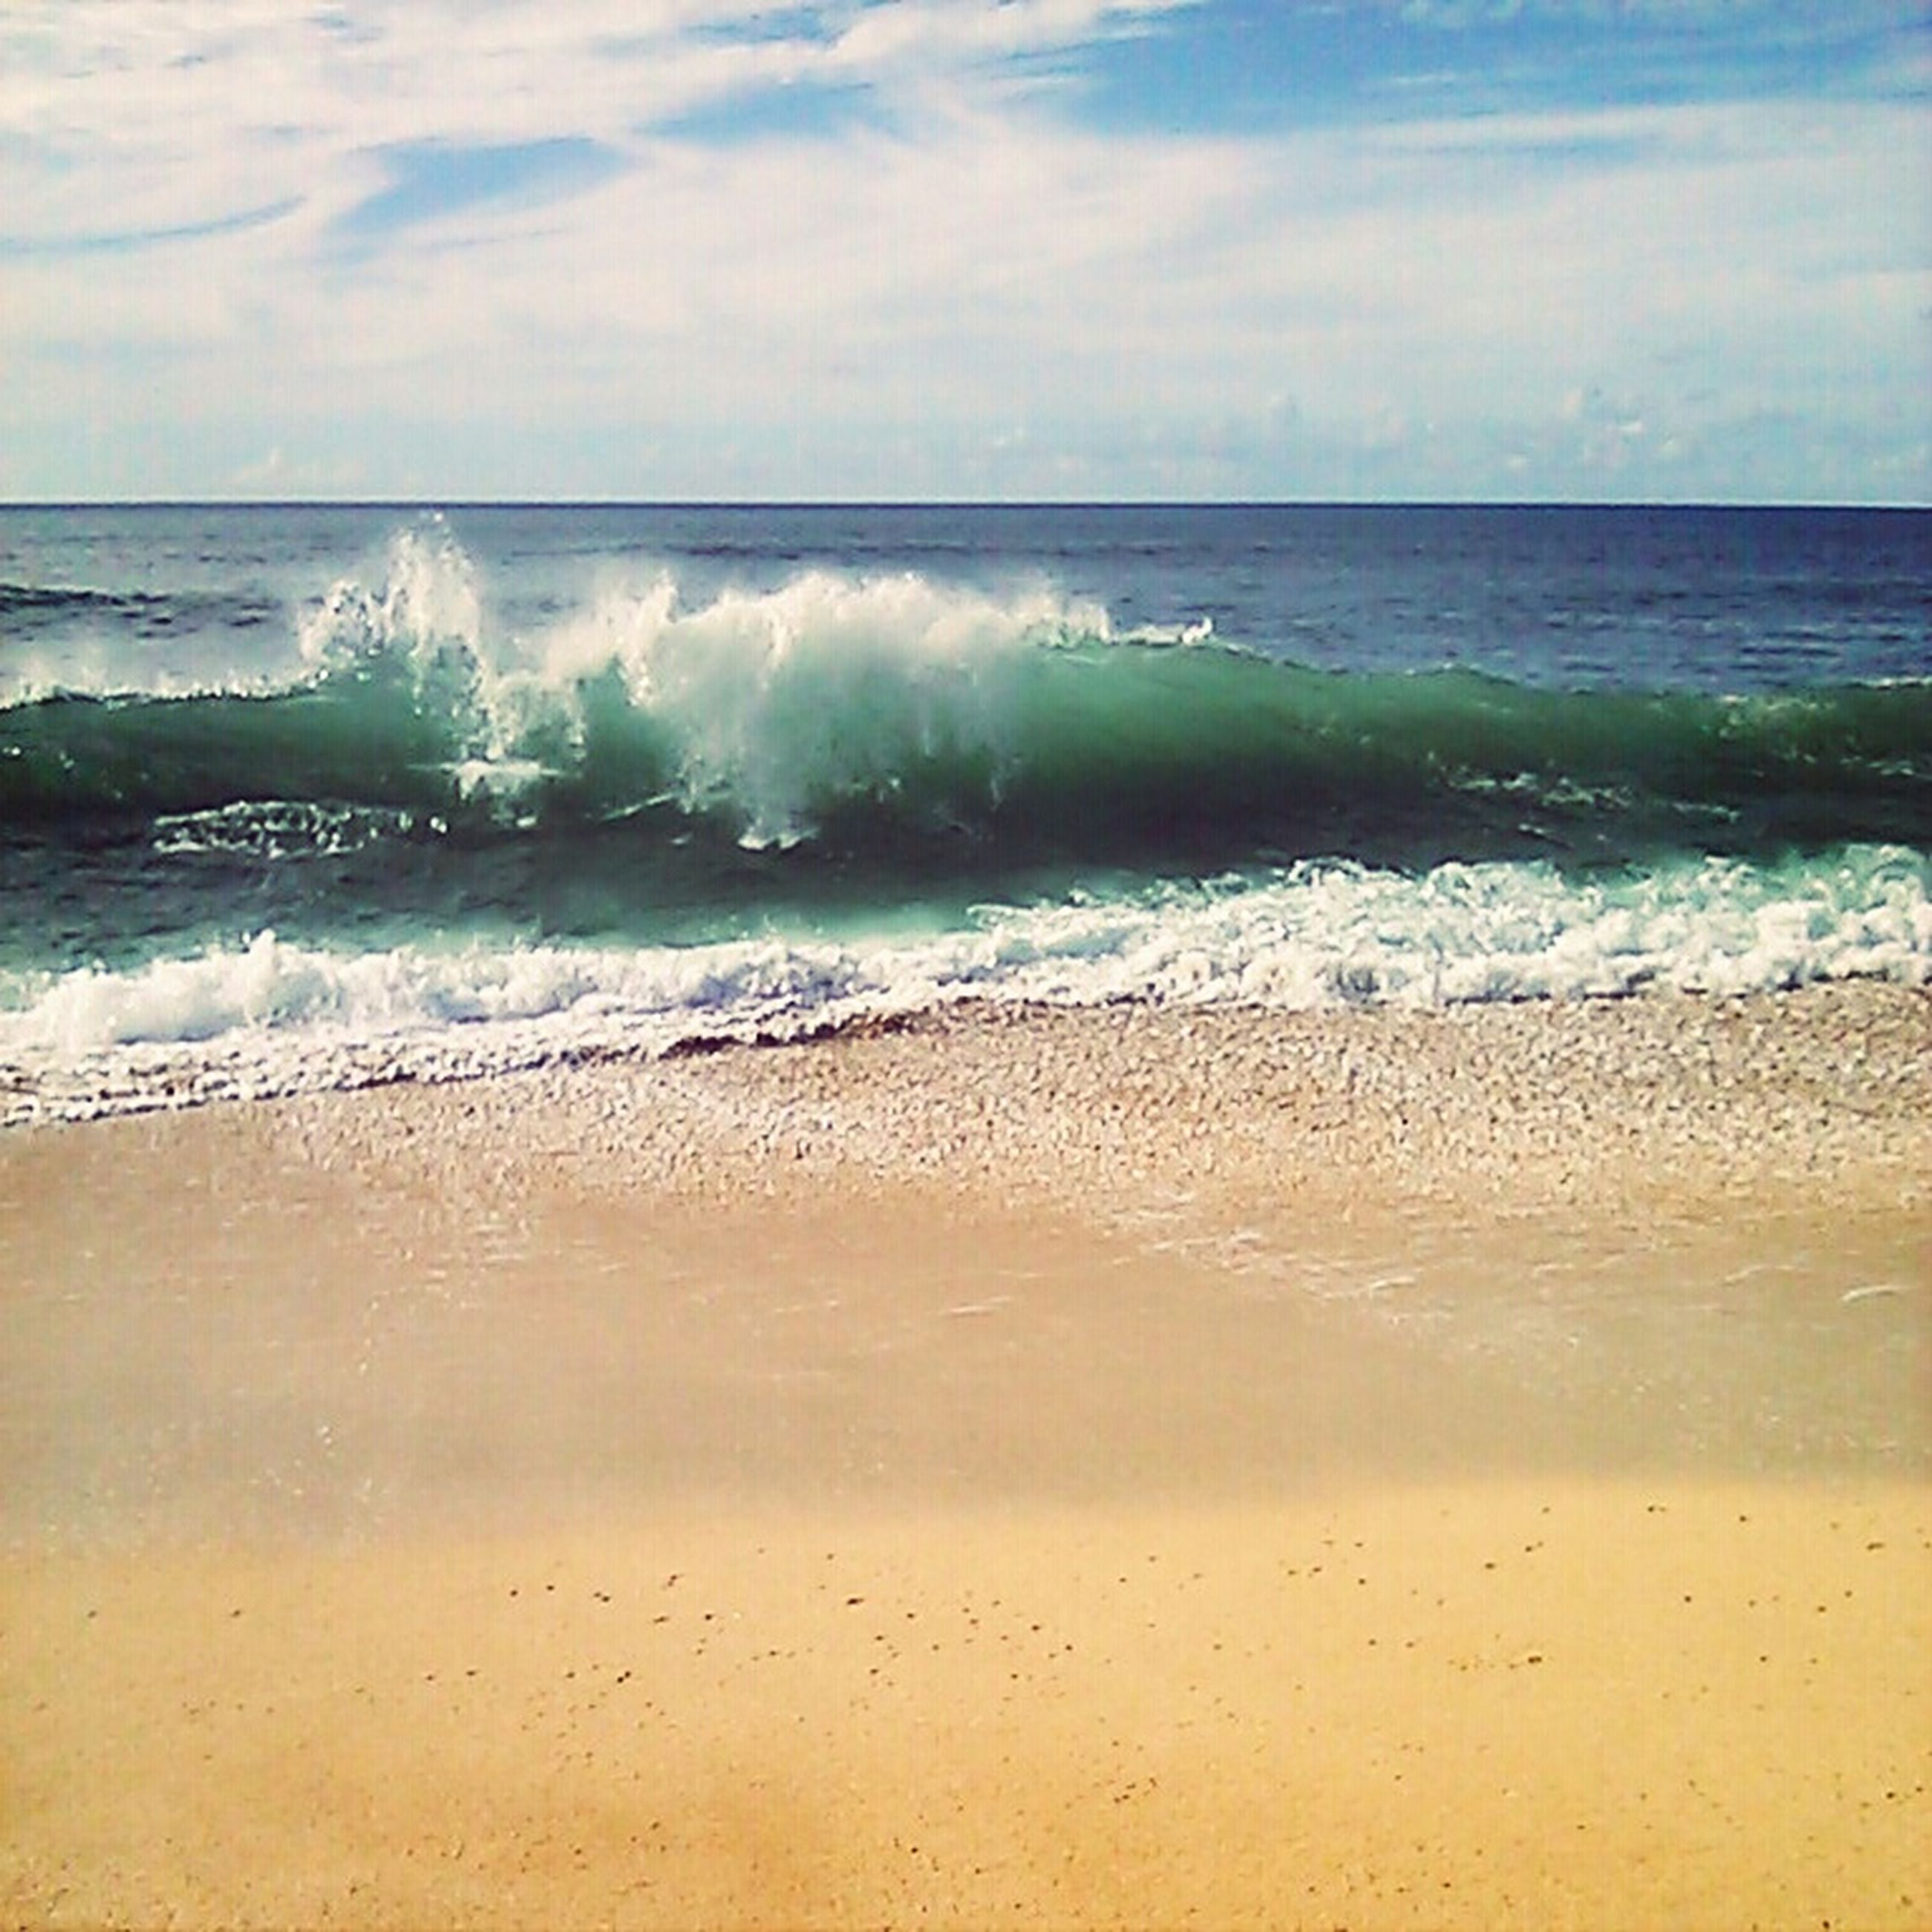 beach, sea, water, horizon over water, shore, sand, sky, scenics, wave, beauty in nature, tranquil scene, tranquility, surf, nature, cloud - sky, idyllic, cloud, tide, cloudy, motion